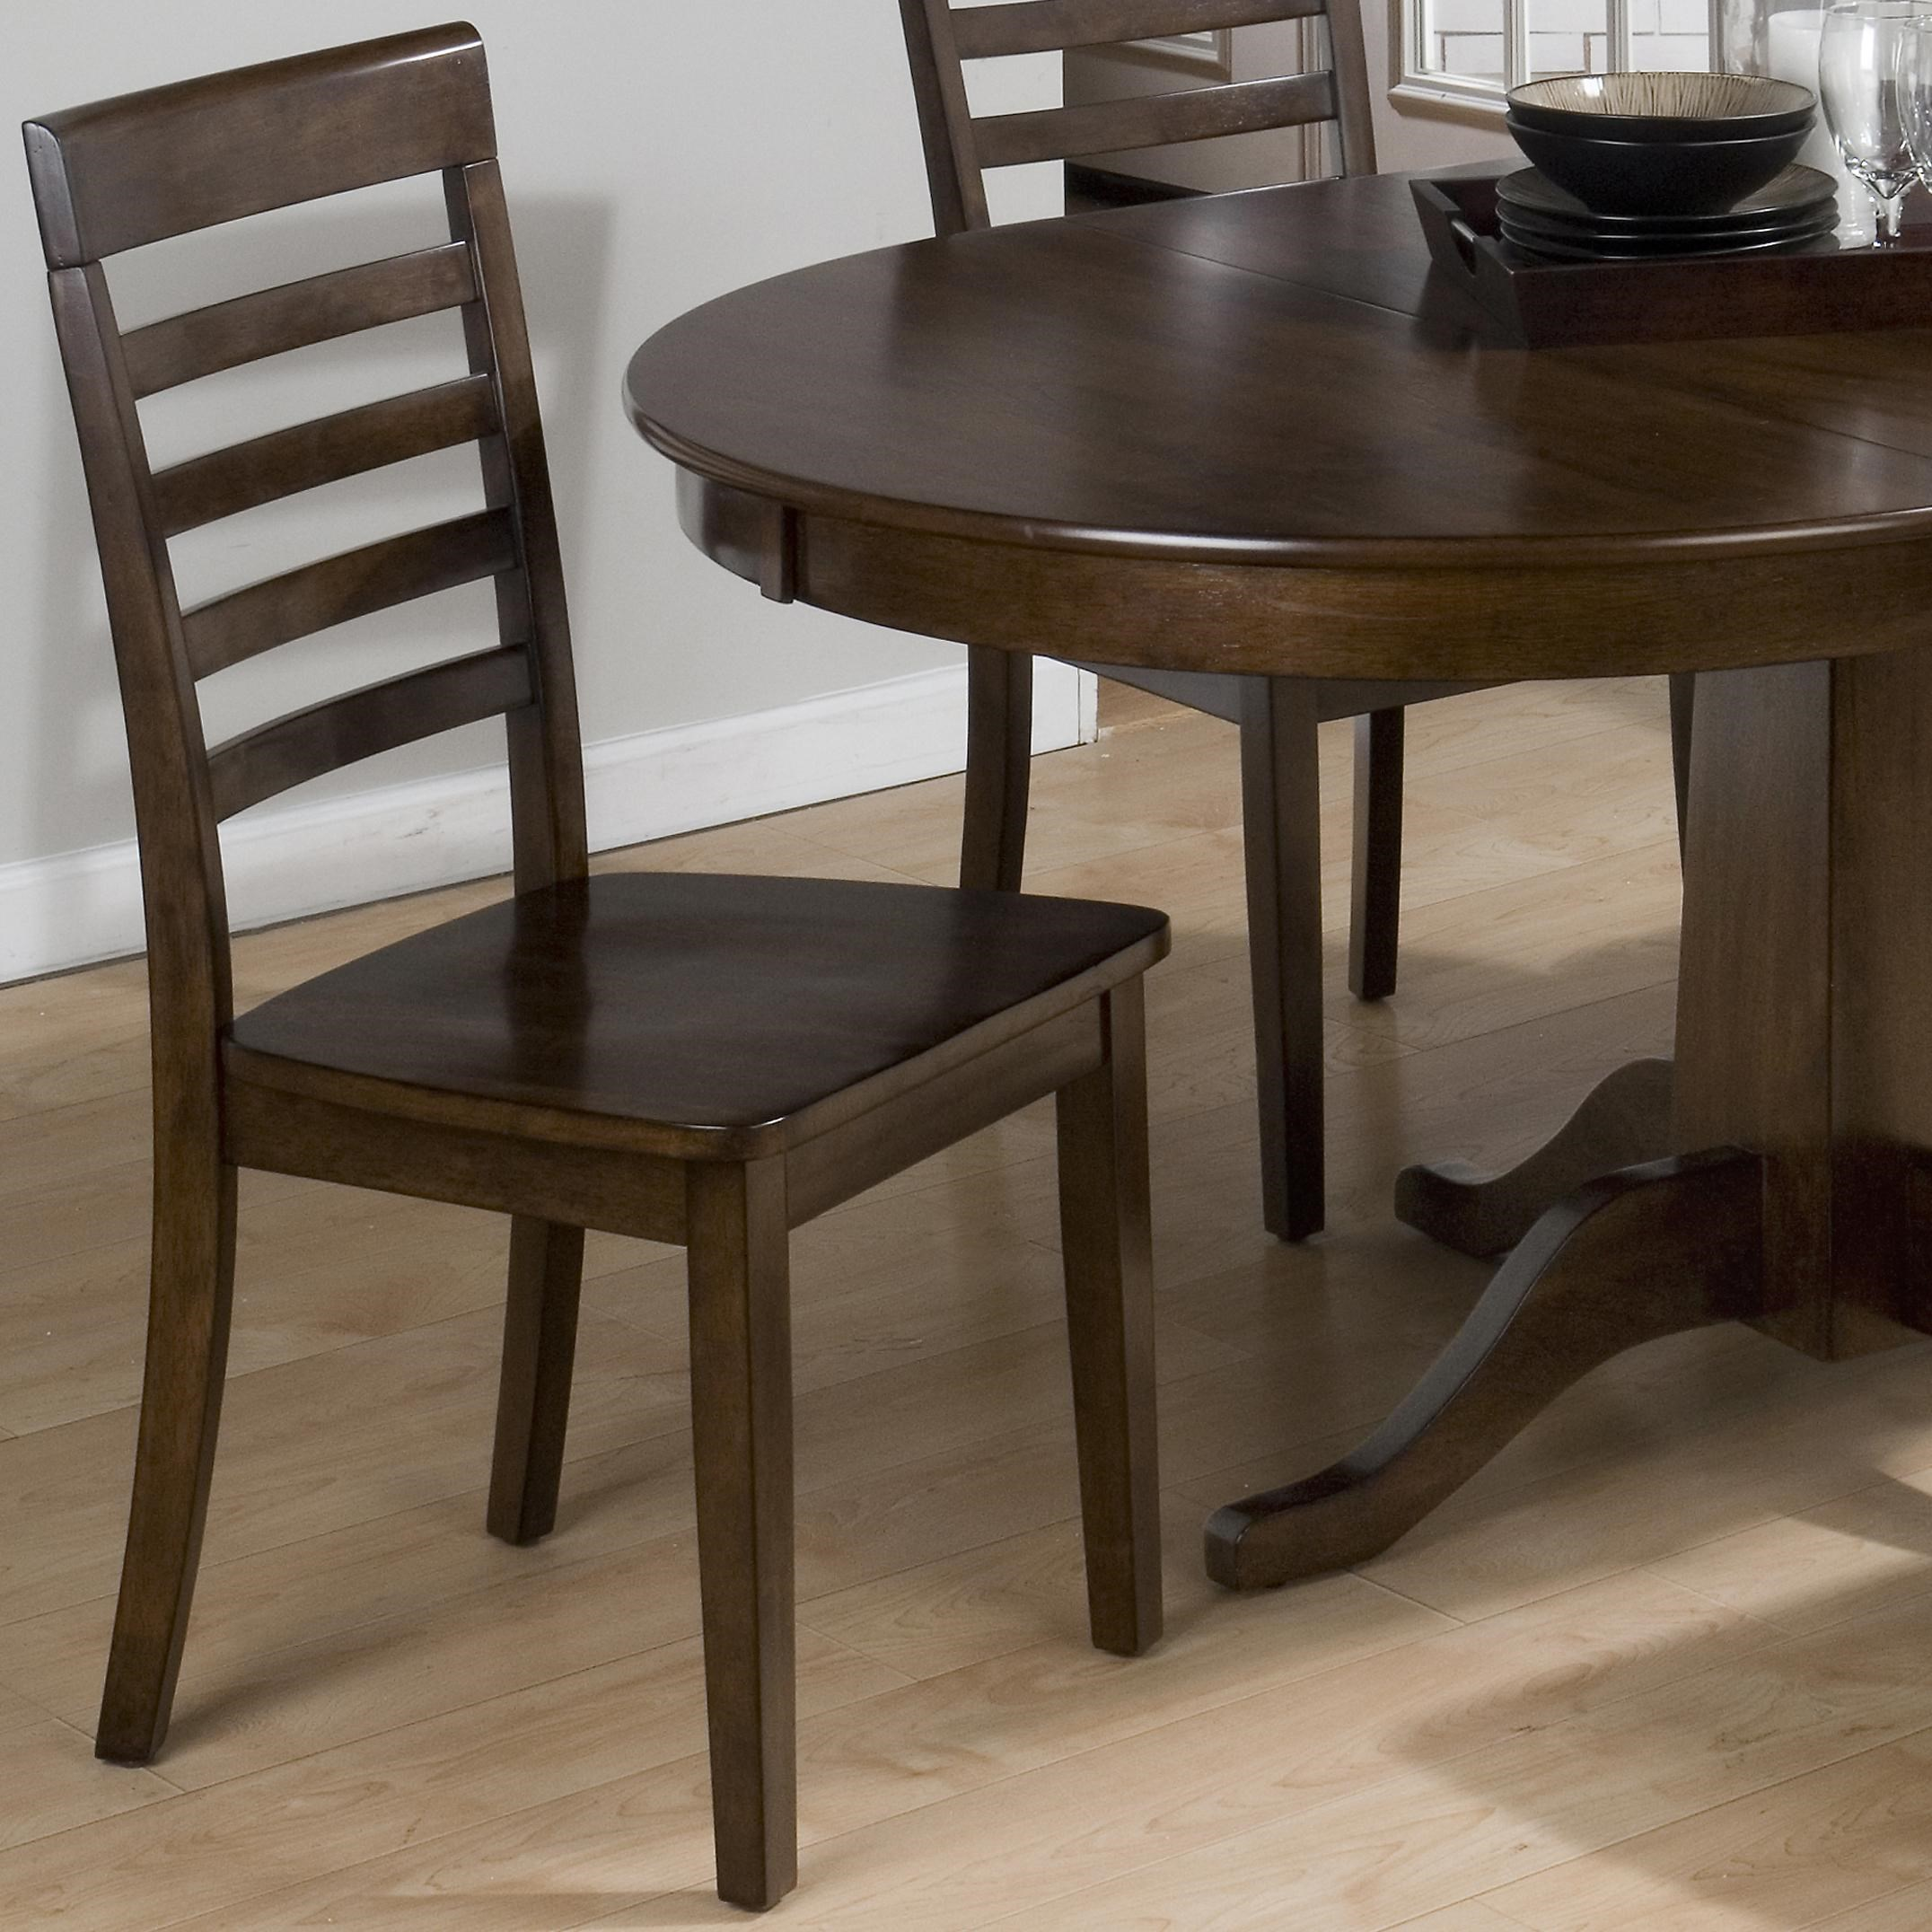 Taylor Cherry Five Slat Ladderback Chair With Wood Seat By Jofran